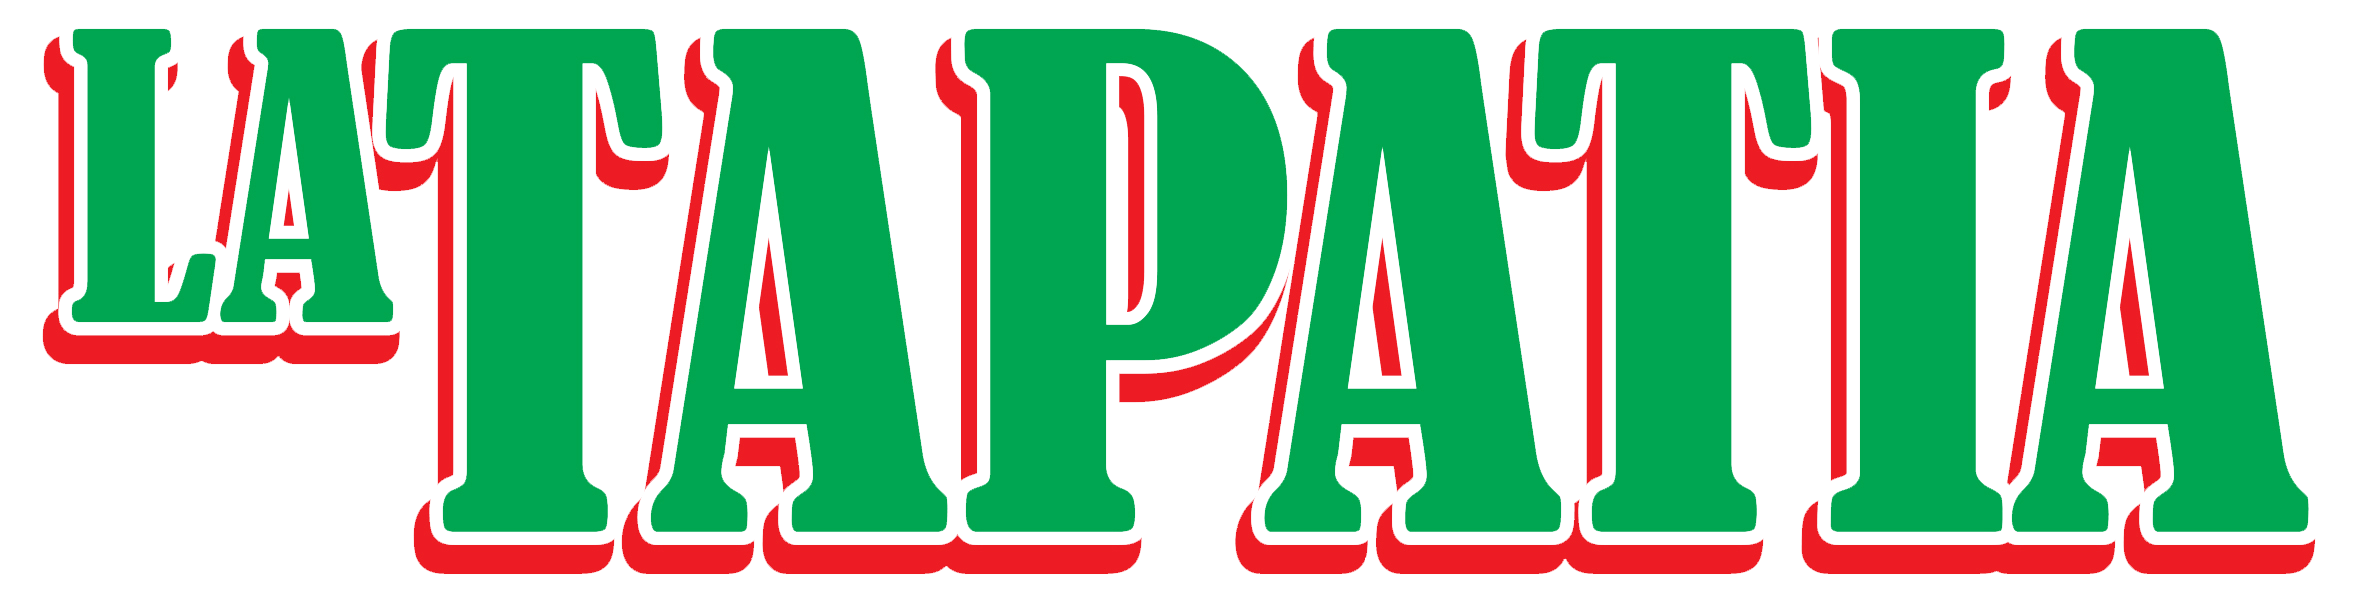 Tapatia_Logo_NameOnly